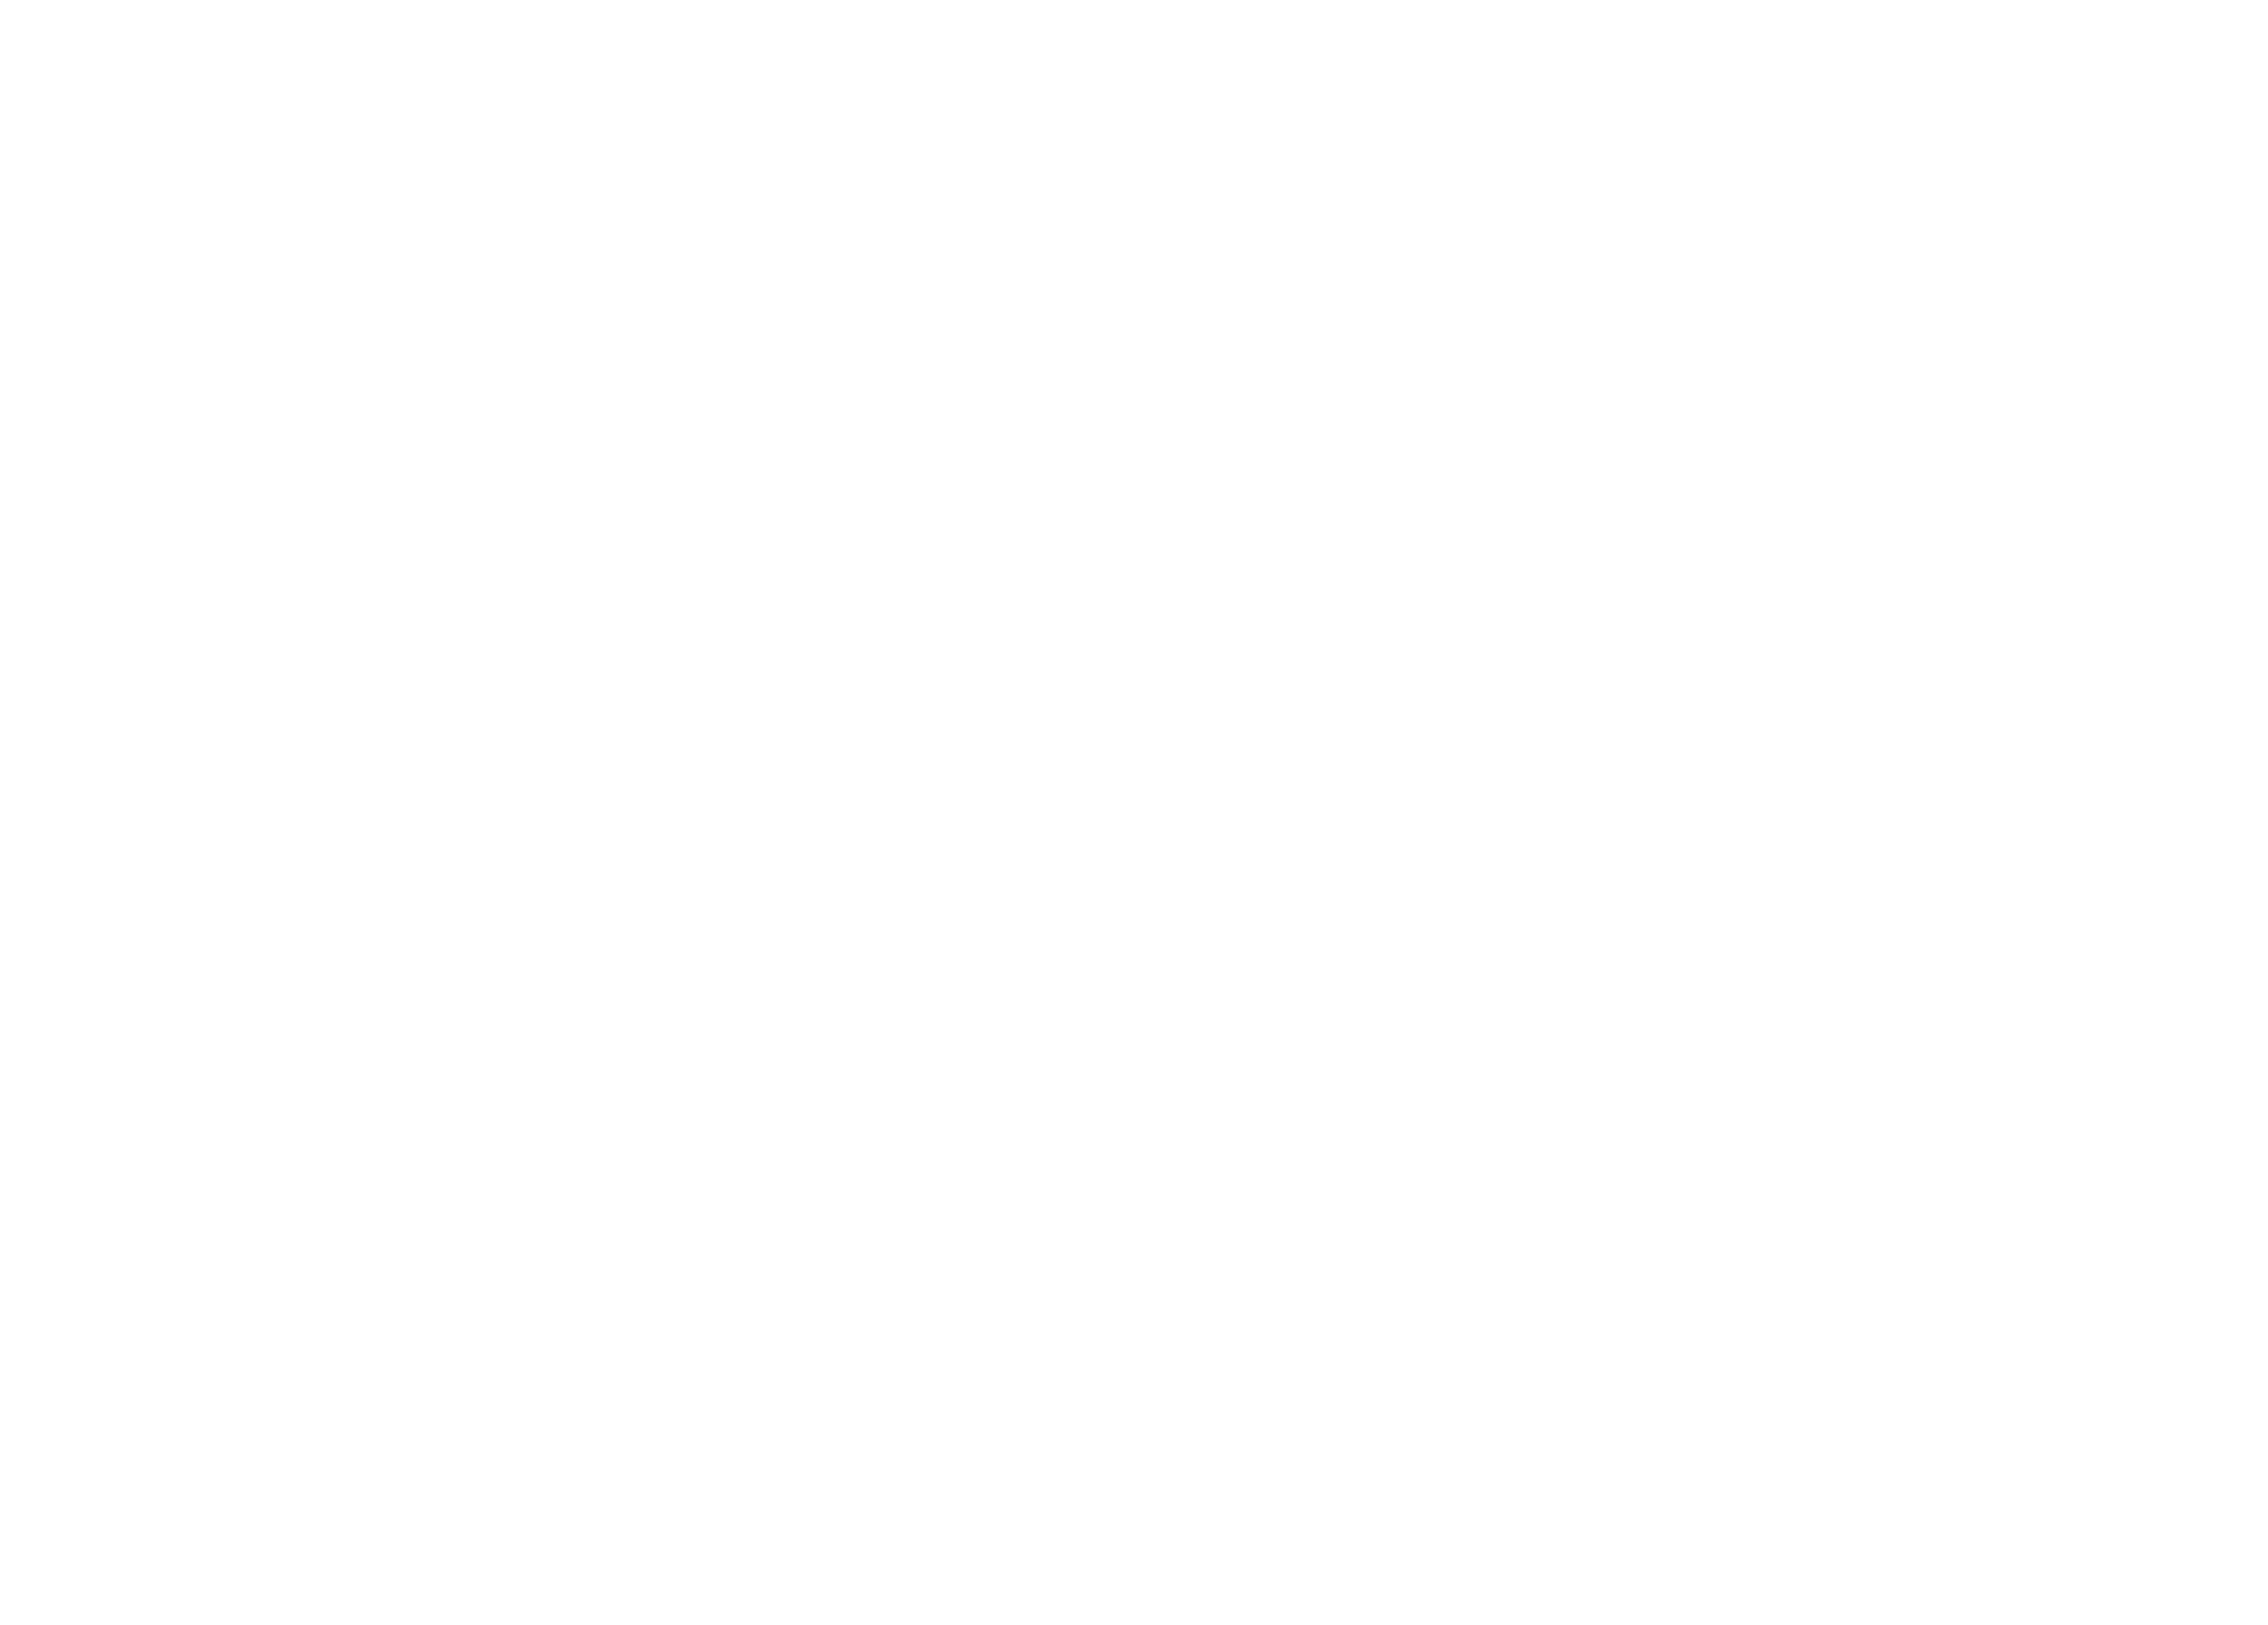 Design an empowering logo for a coaching service targeting women aching for more